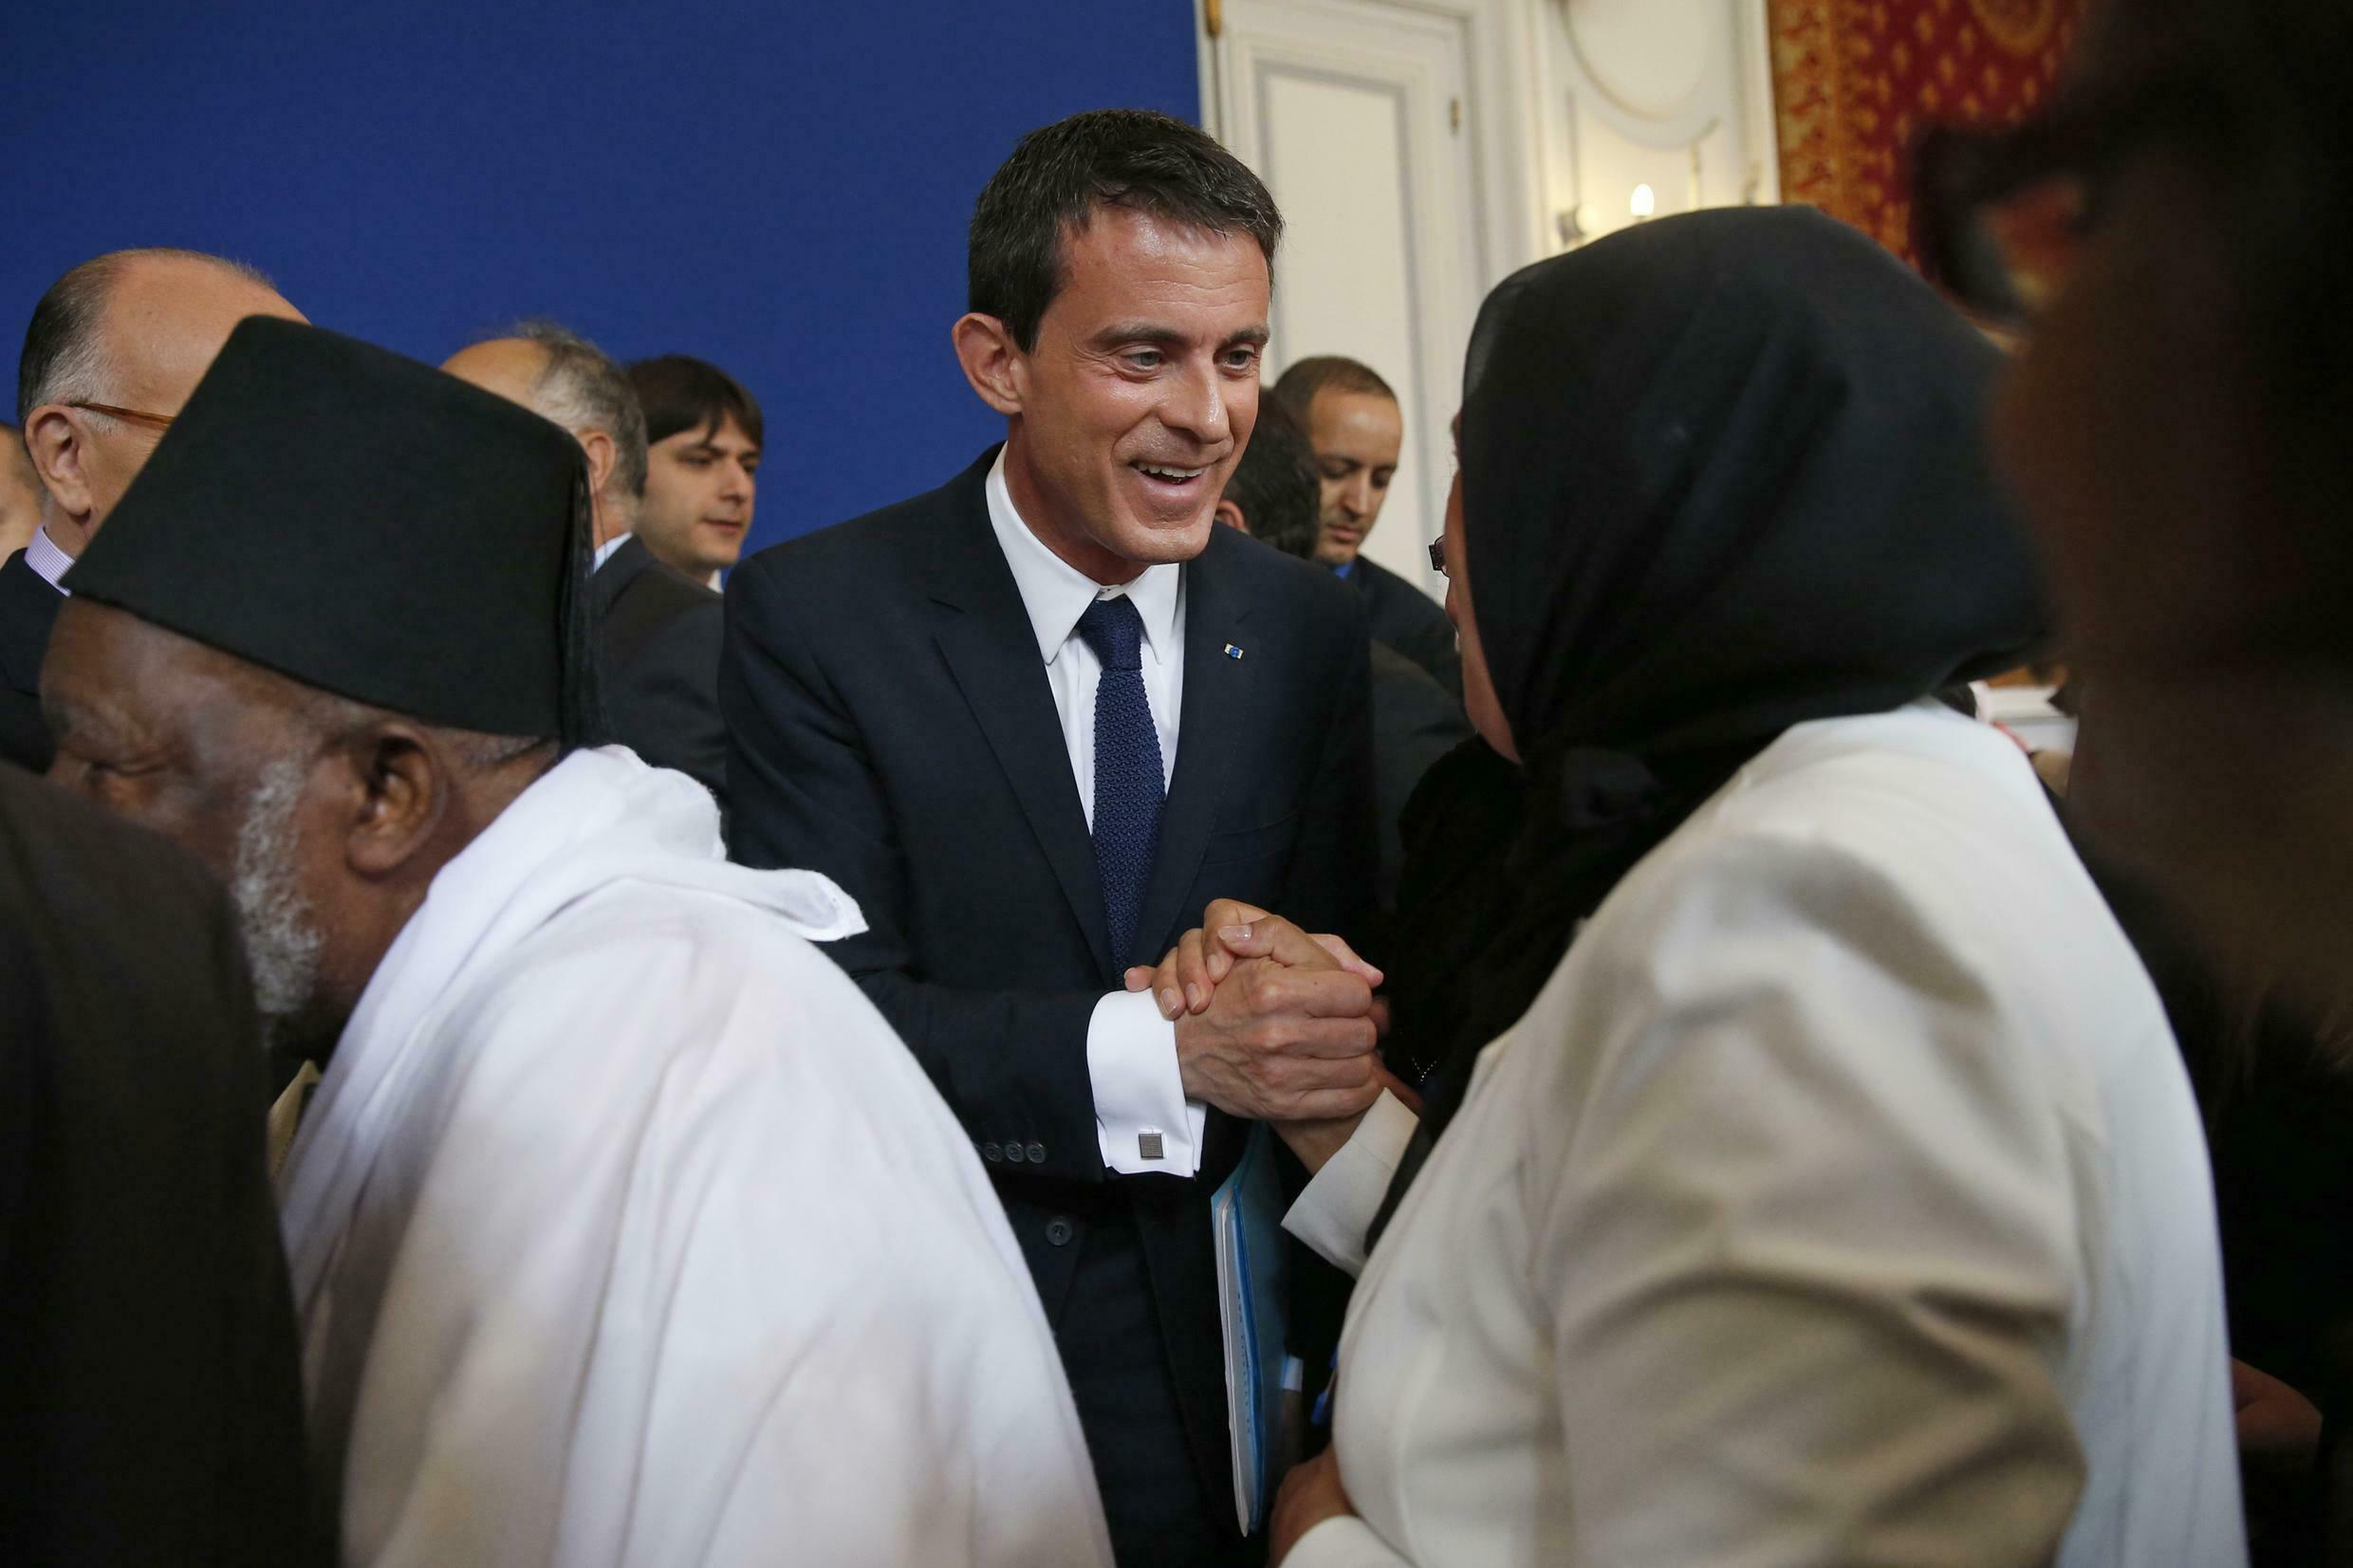 French Prime Minister Manuel Valls meets Latifa Ibn Ziaten, the mother of one of the soldiers killed by Mohamed Merah